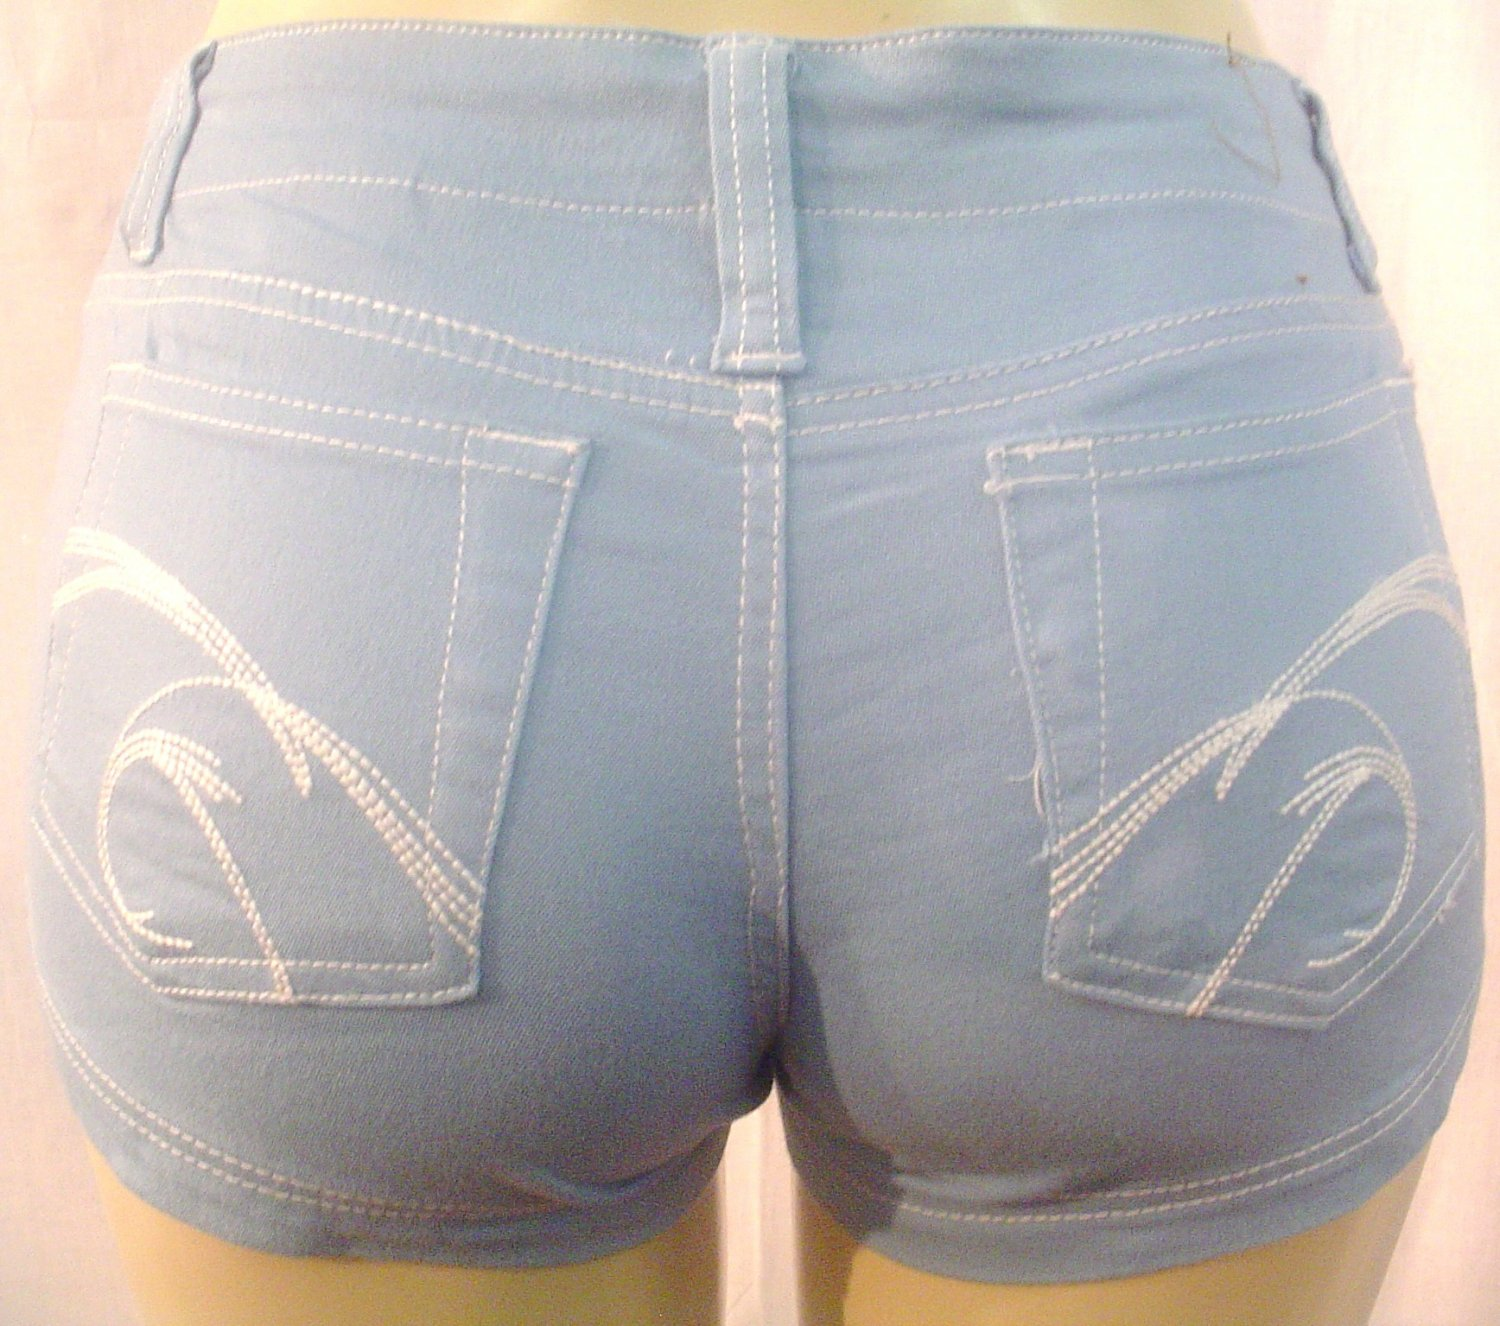 NEW ultra stretchy soft colored denim knit shorts, blue sz 5